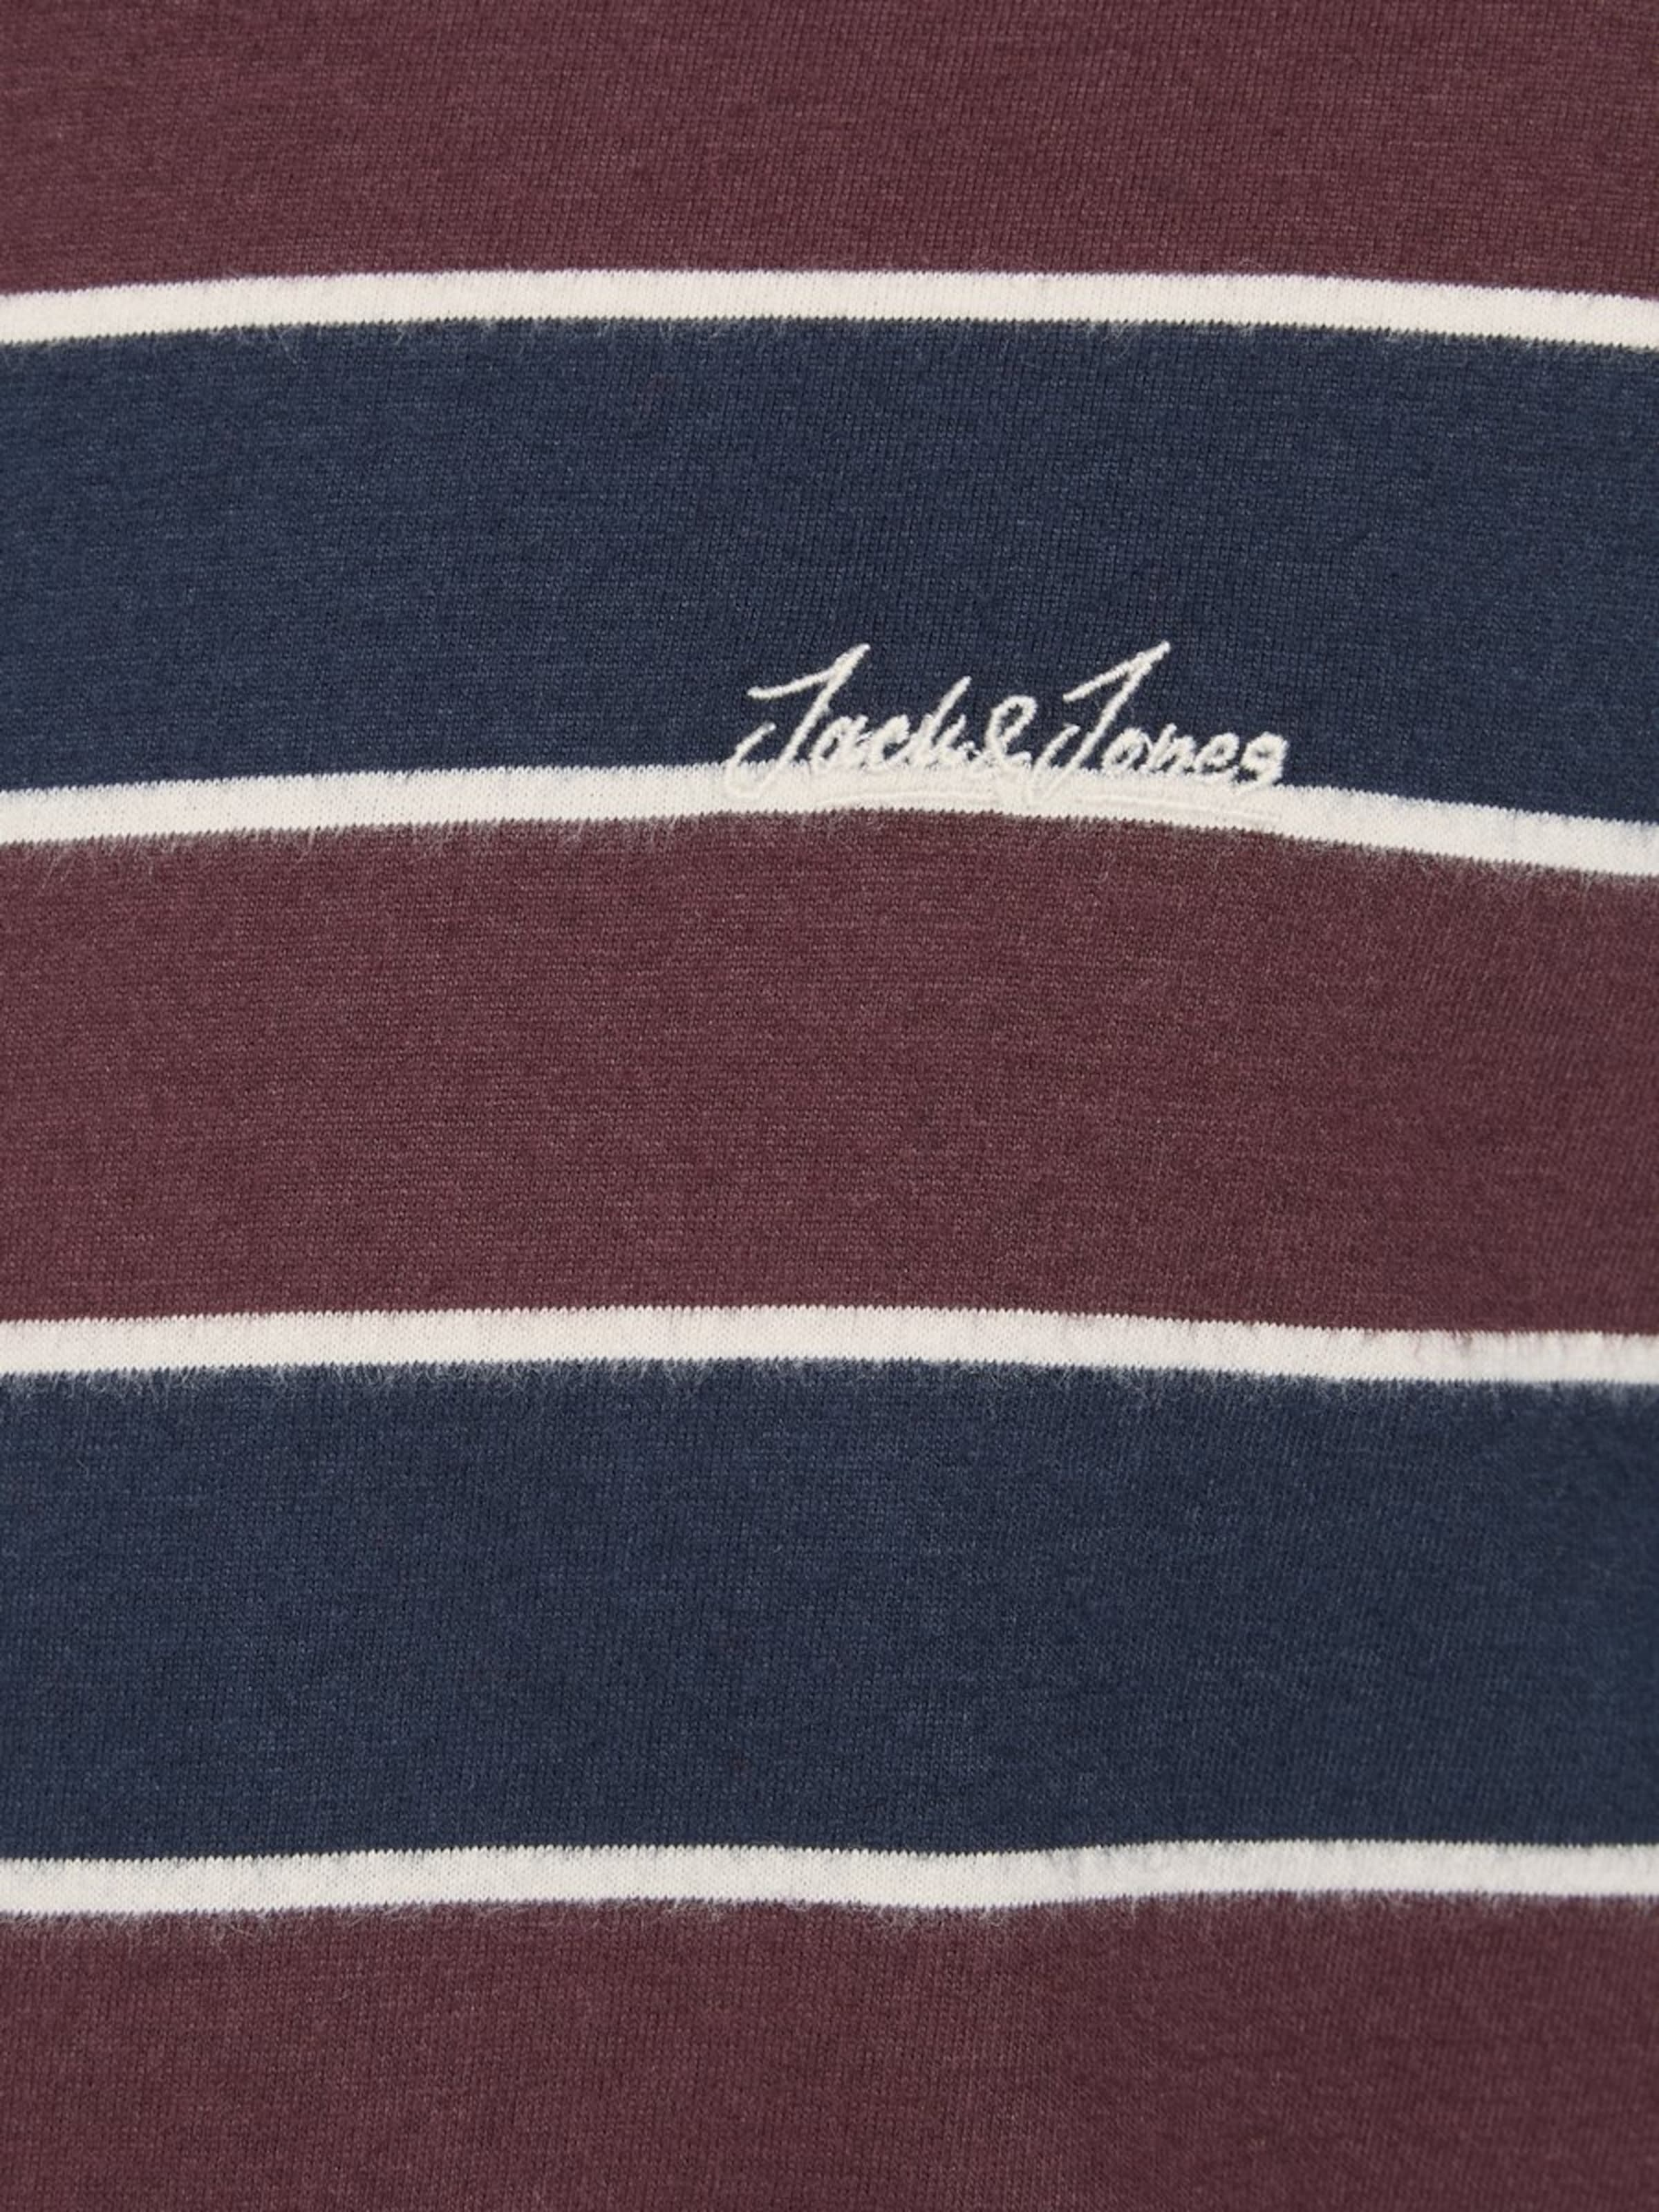 De Jackamp; Mélange Couleurs T Jones shirt En OwP0nk8